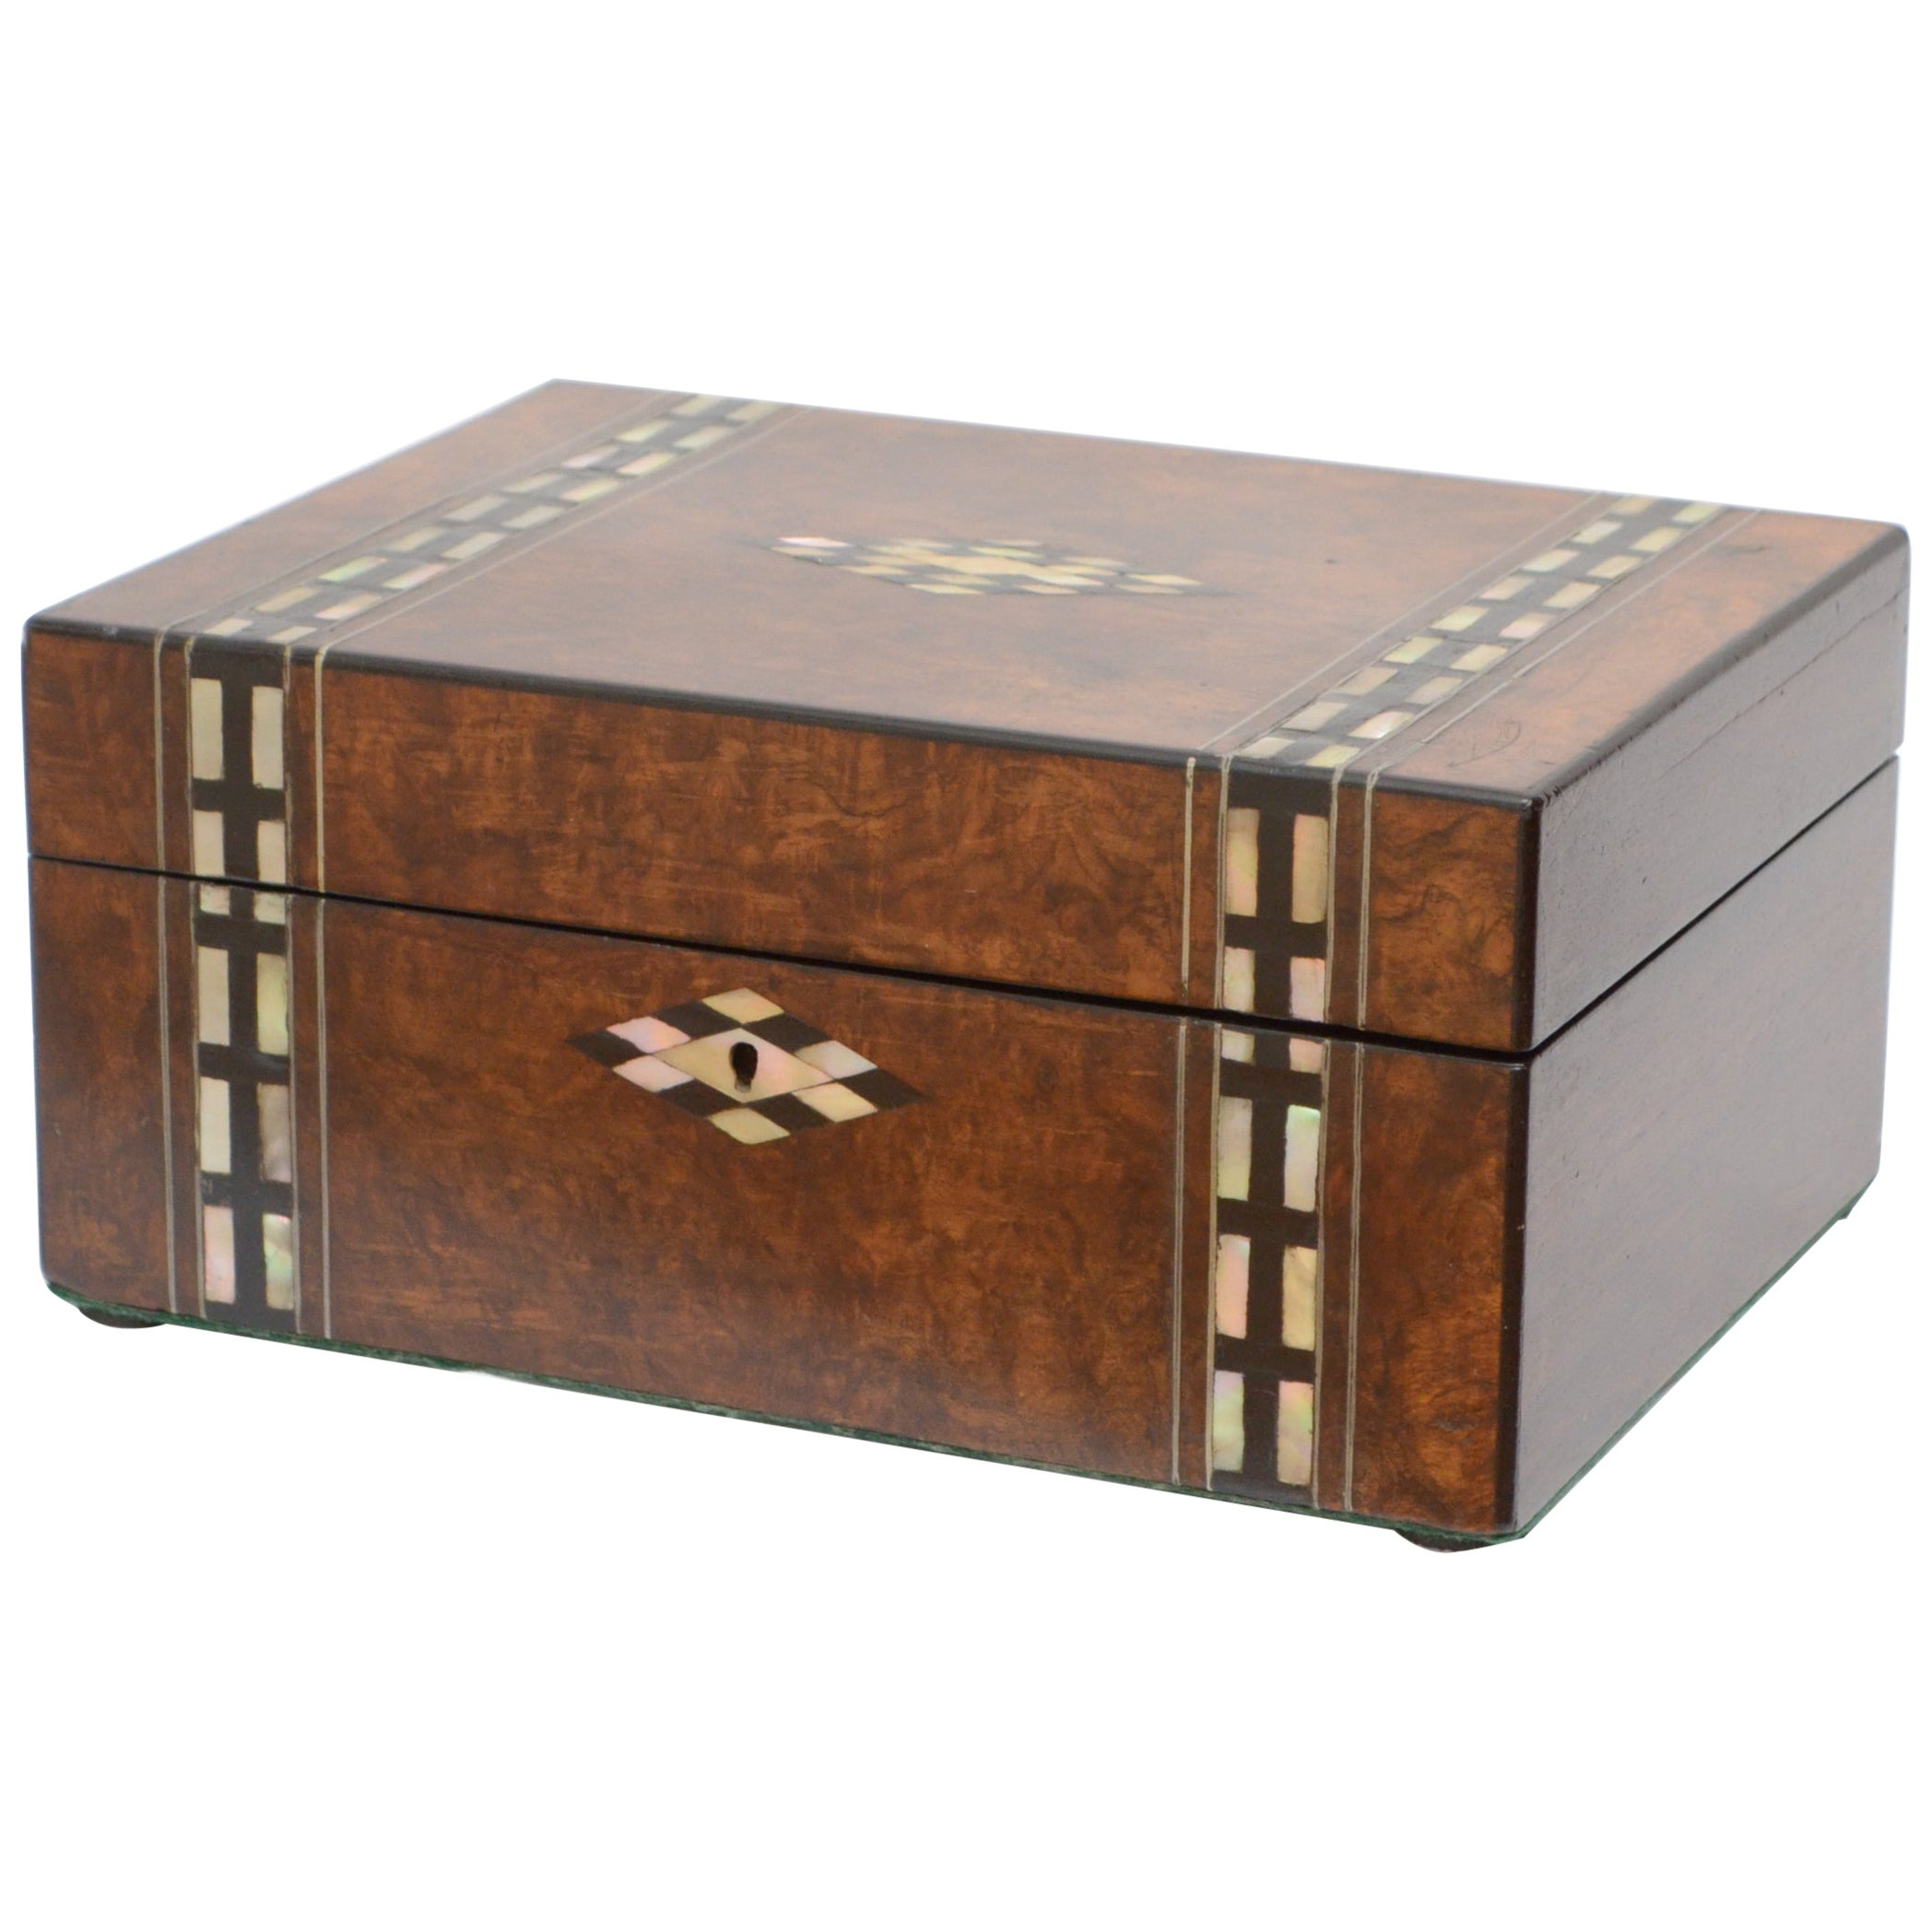 Victorian Walnut and Inlaid Jewelry Box Sewing Box with Tray